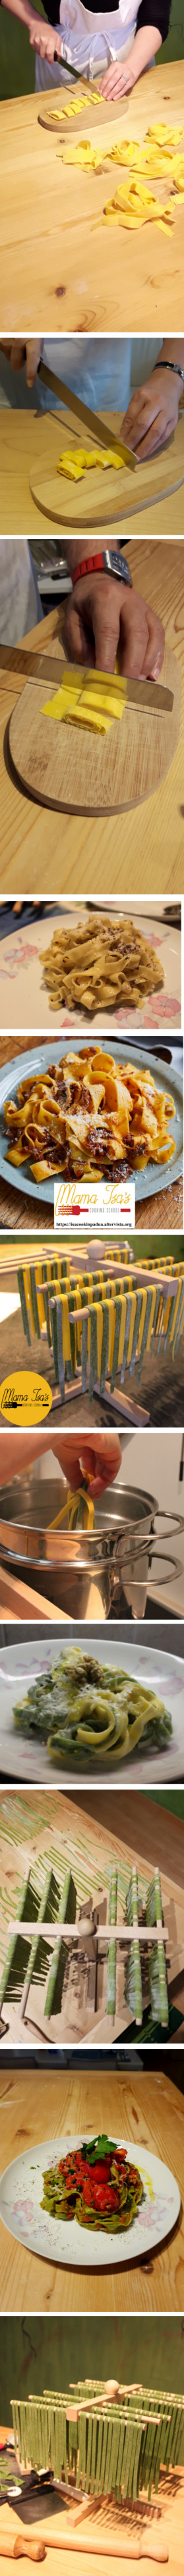 Tagliatelle Pasta Classes By Hand in Italy